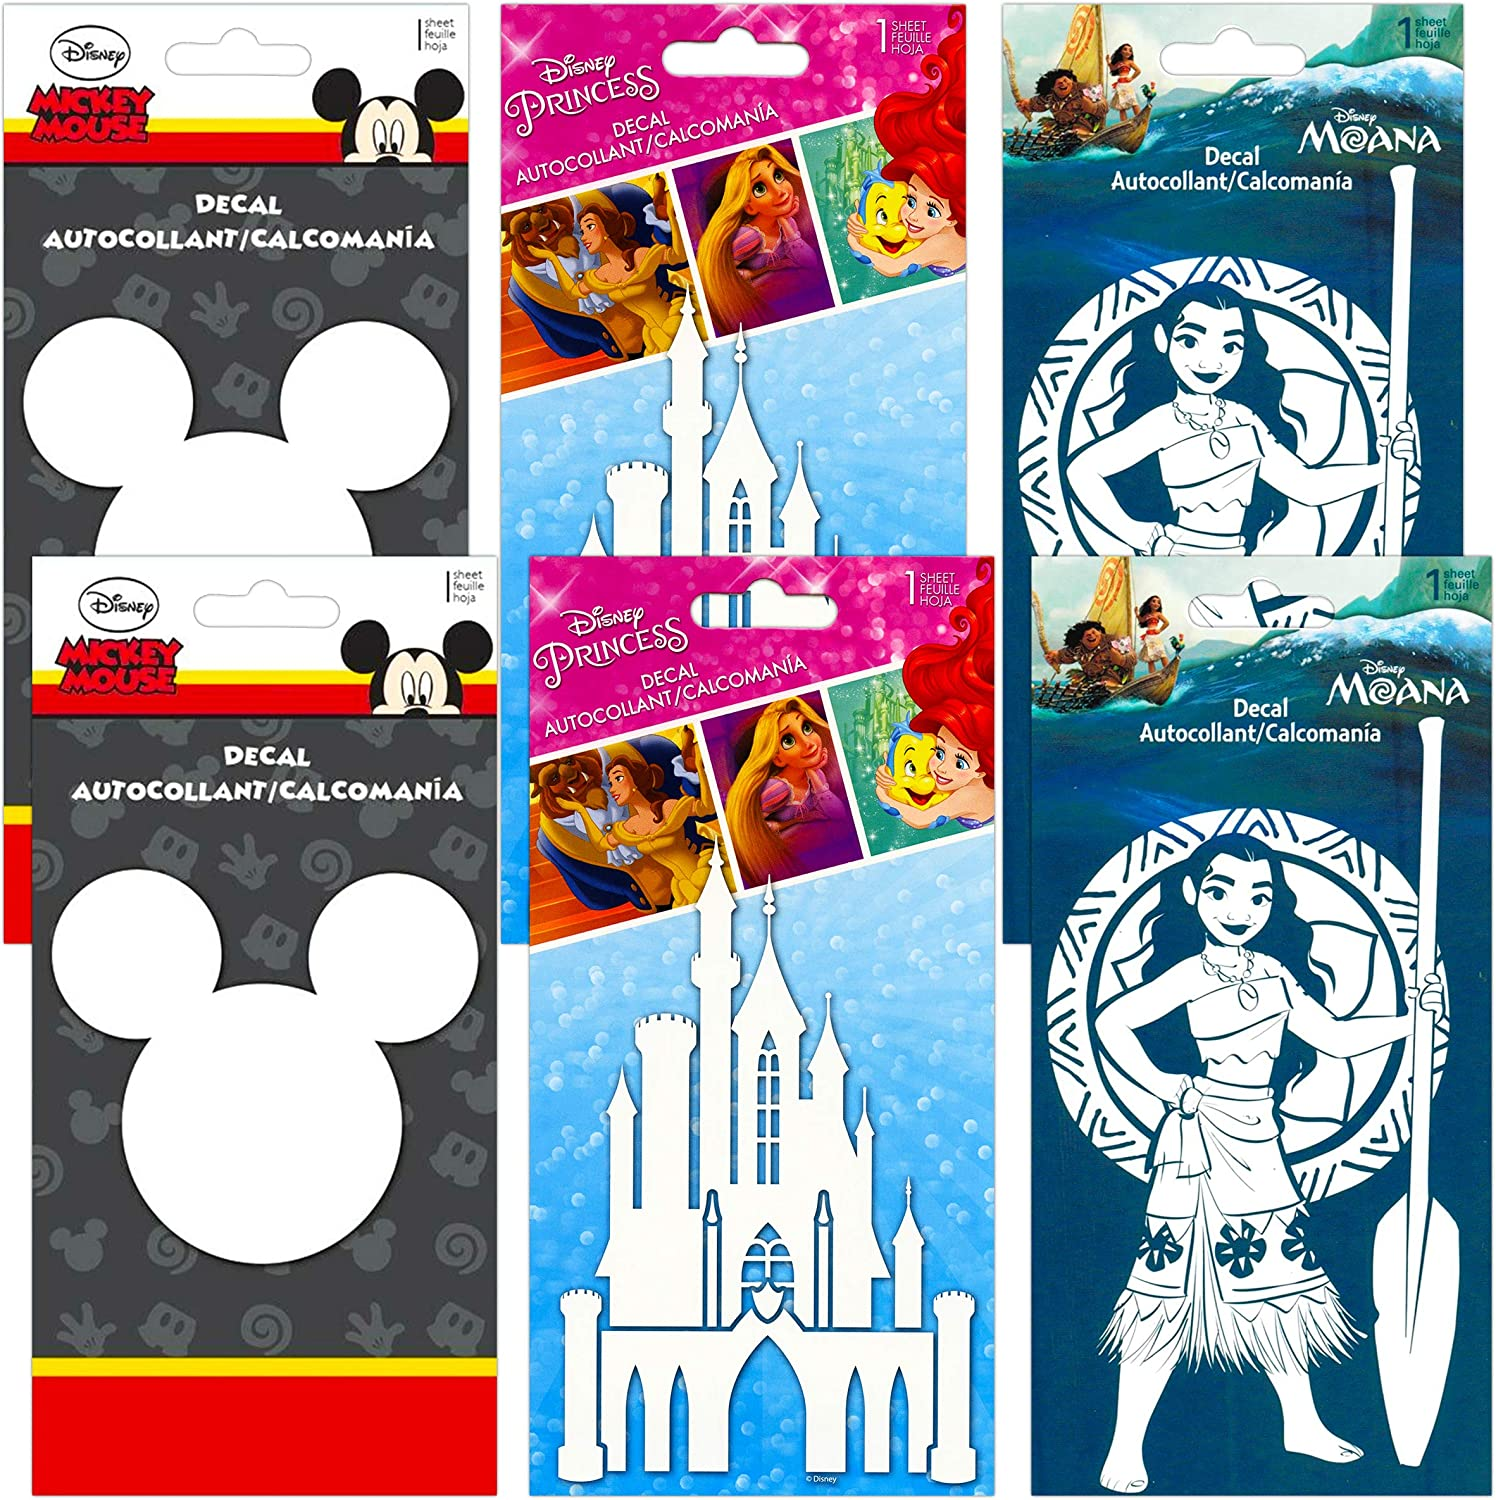 Disney Sticker Decal Bundle Disney Party Decoration Set - 6 Pack Disney Room Decor for Adults Kids Decals Featuring Cinderella, Mickey Mouse, and Moana Disney Wall Art (Disney Party Favors)